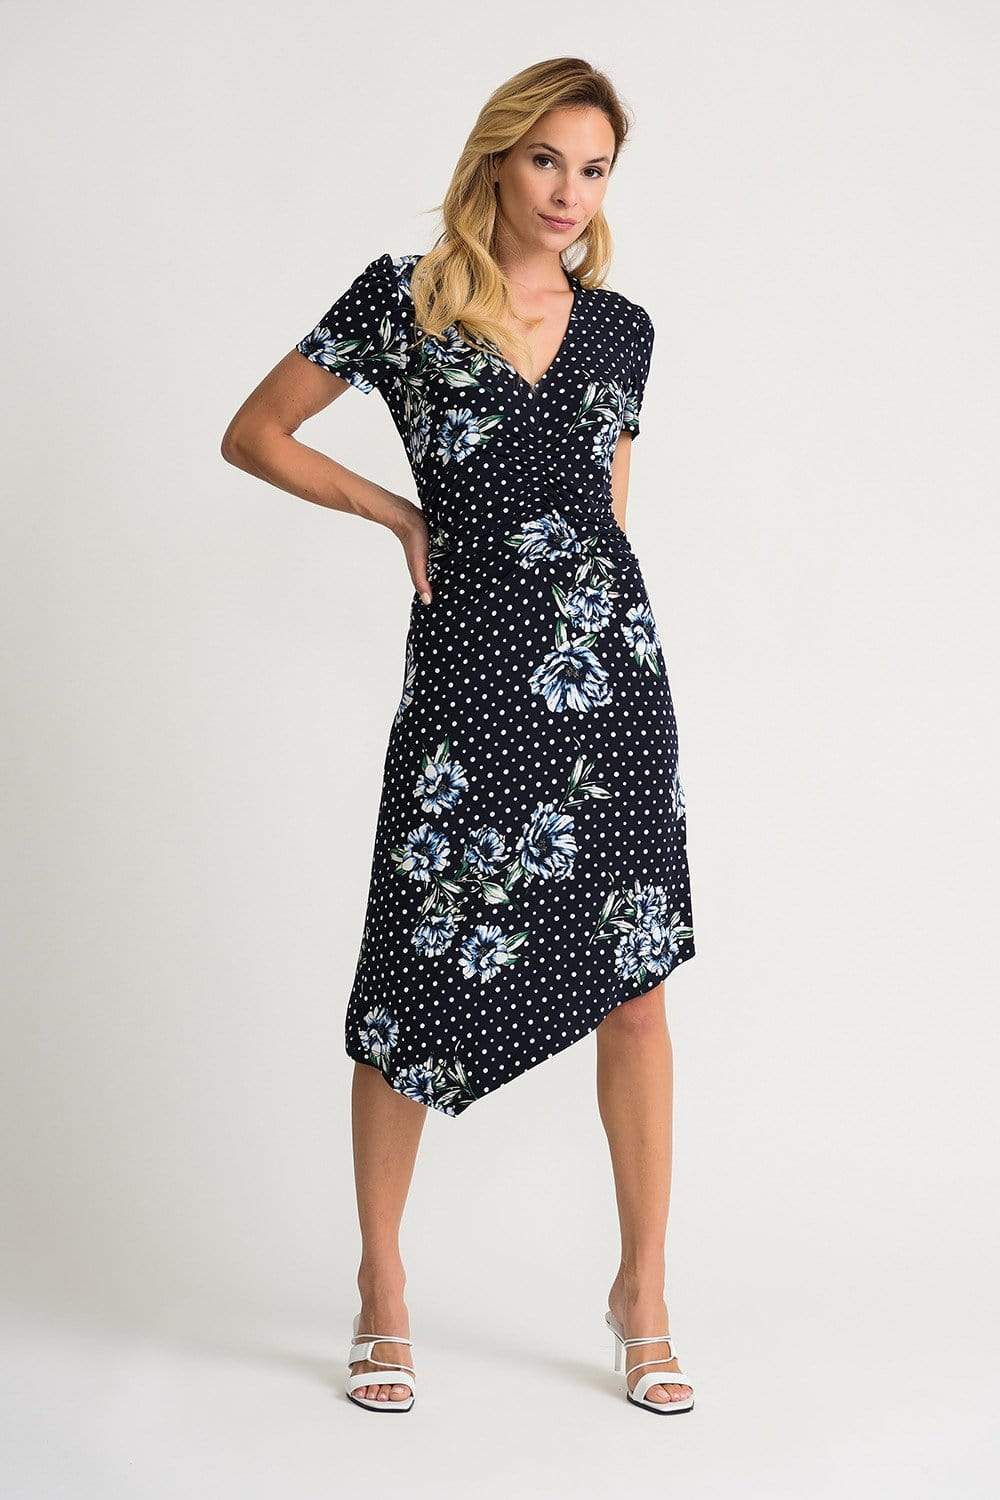 Joseph Ribkoff Dresses Joseph Ribkoff Mid  Navy Printed 202056 Dress izzi-of-baslow